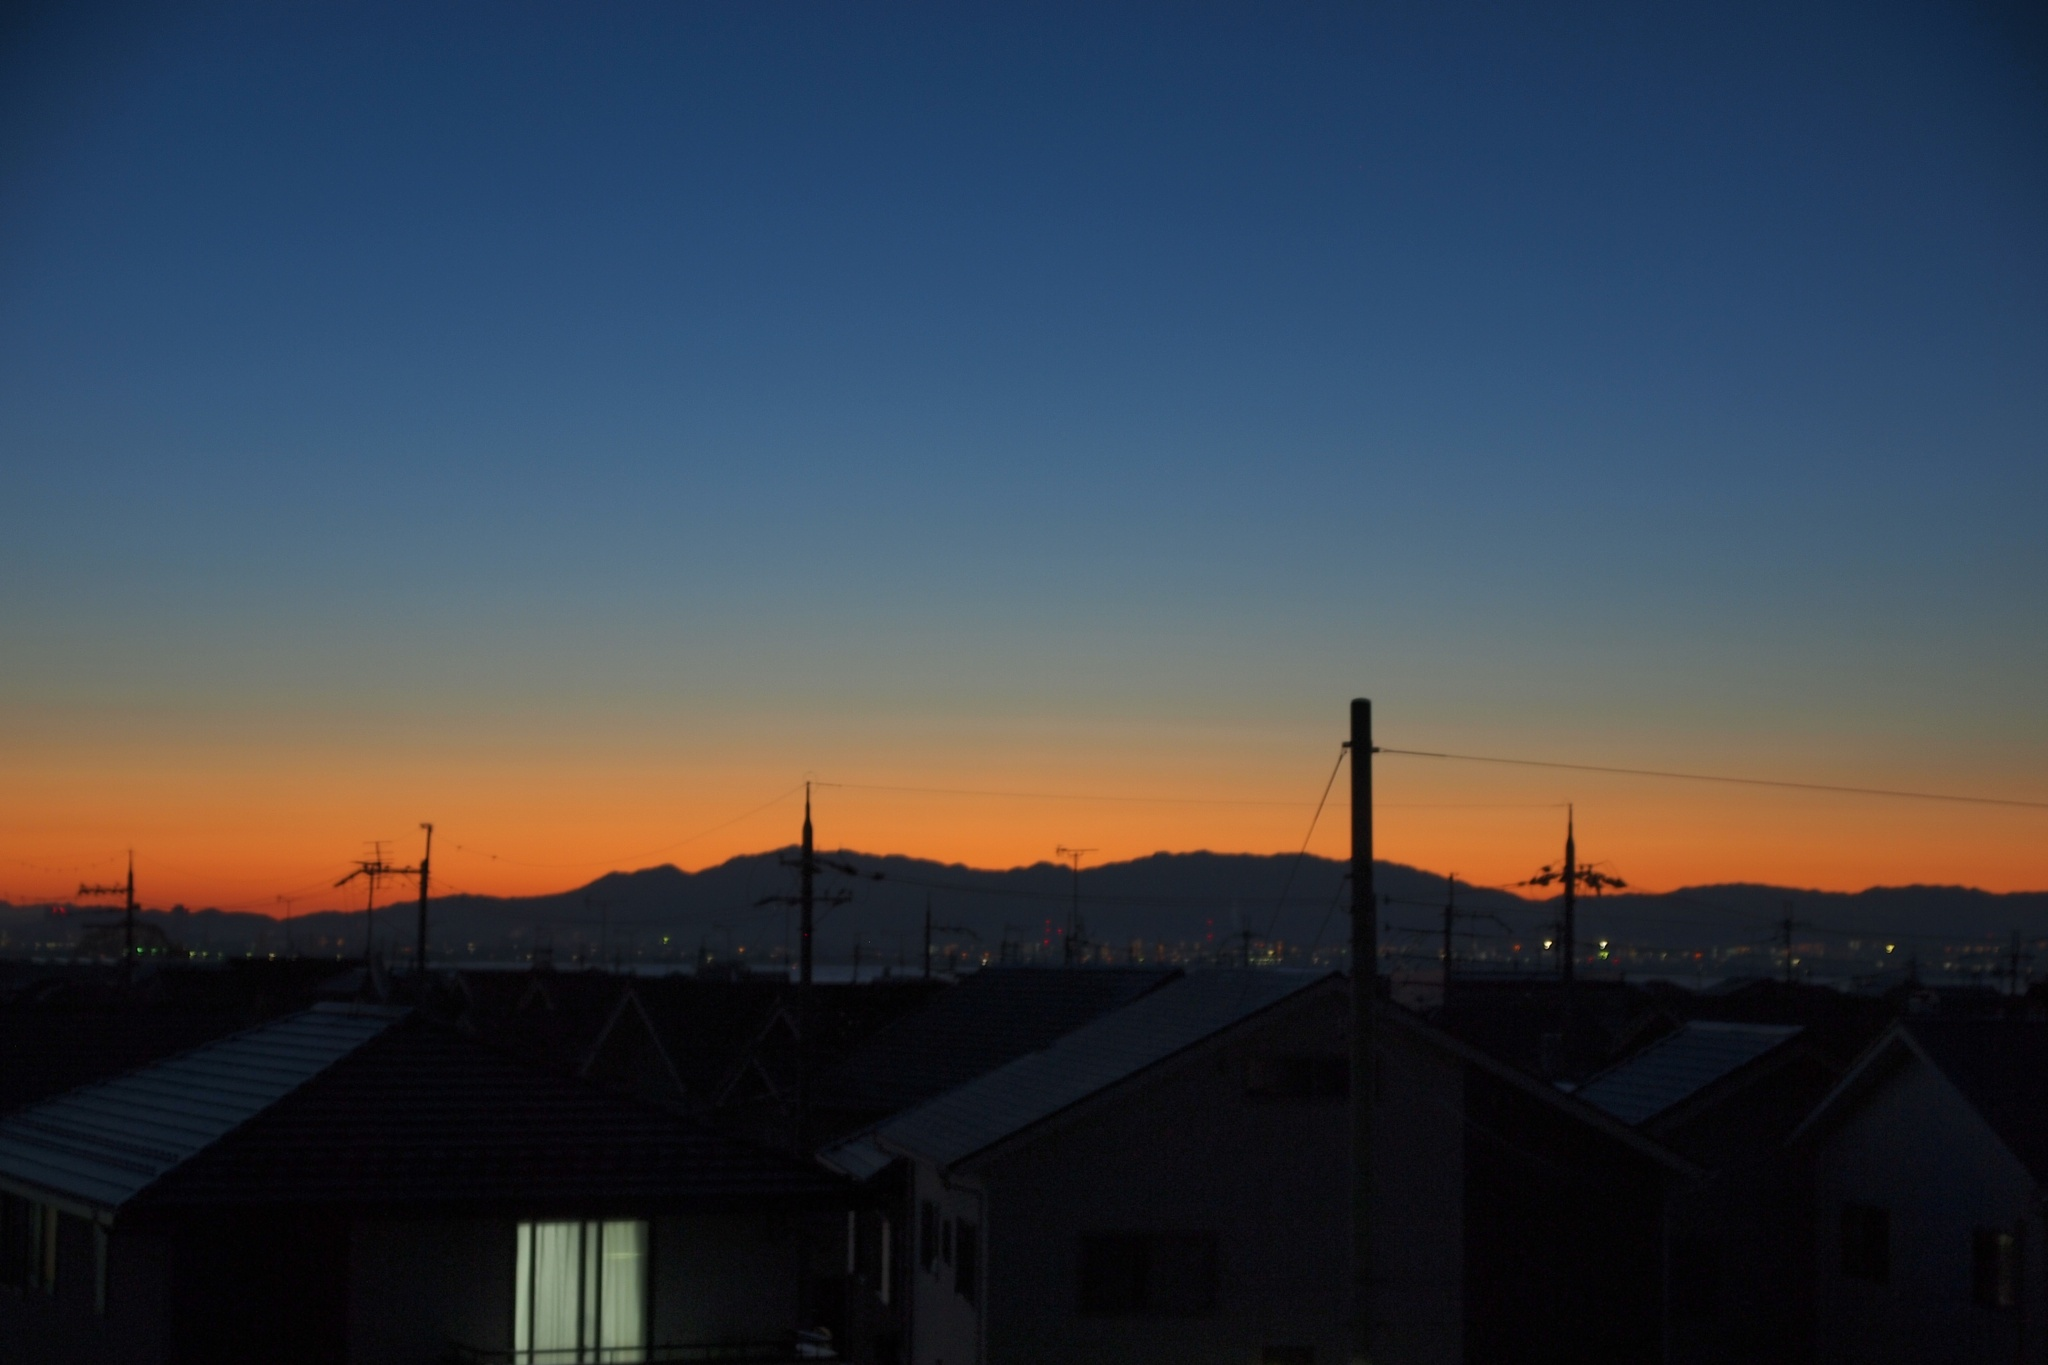 Early morning of gradation by SANRI